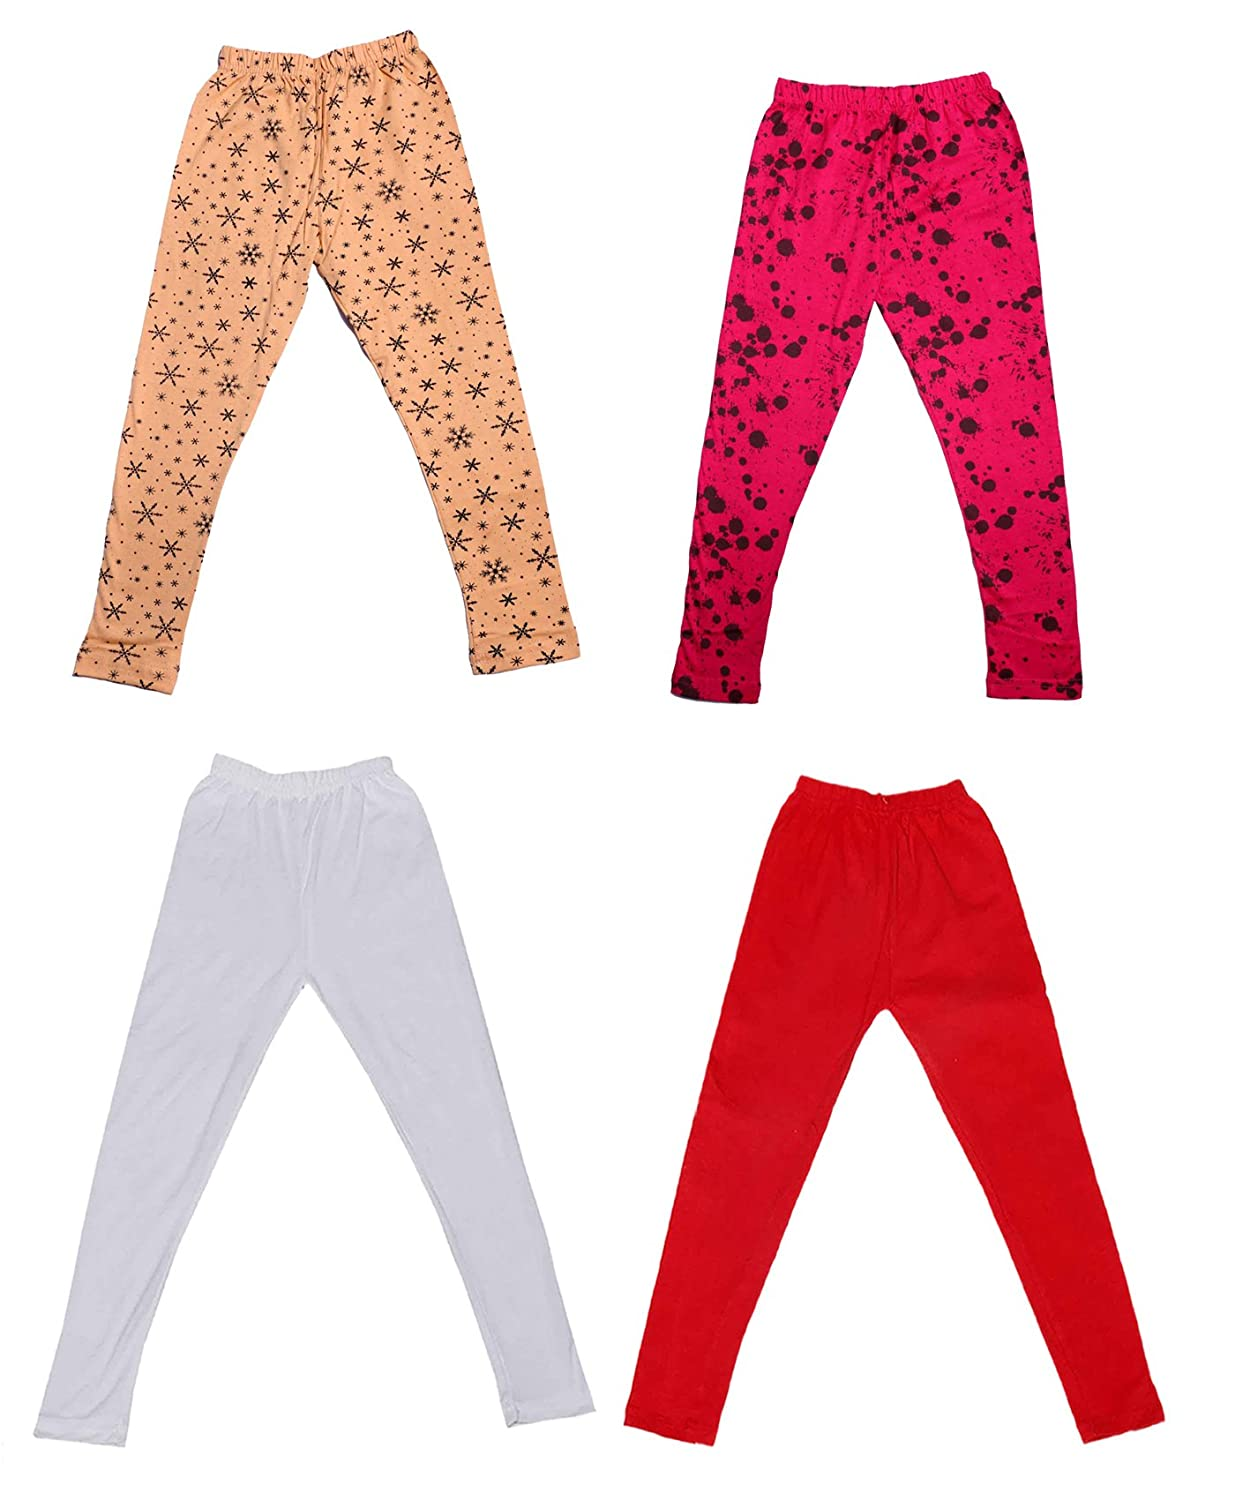 Indistar Girls 2 Cotton Solid Legging Pants and 2 Cotton Printed Legging Pants Pack Of 4 /_Multicolor/_Size-4-5 Years/_71403041920-IW-P4-26